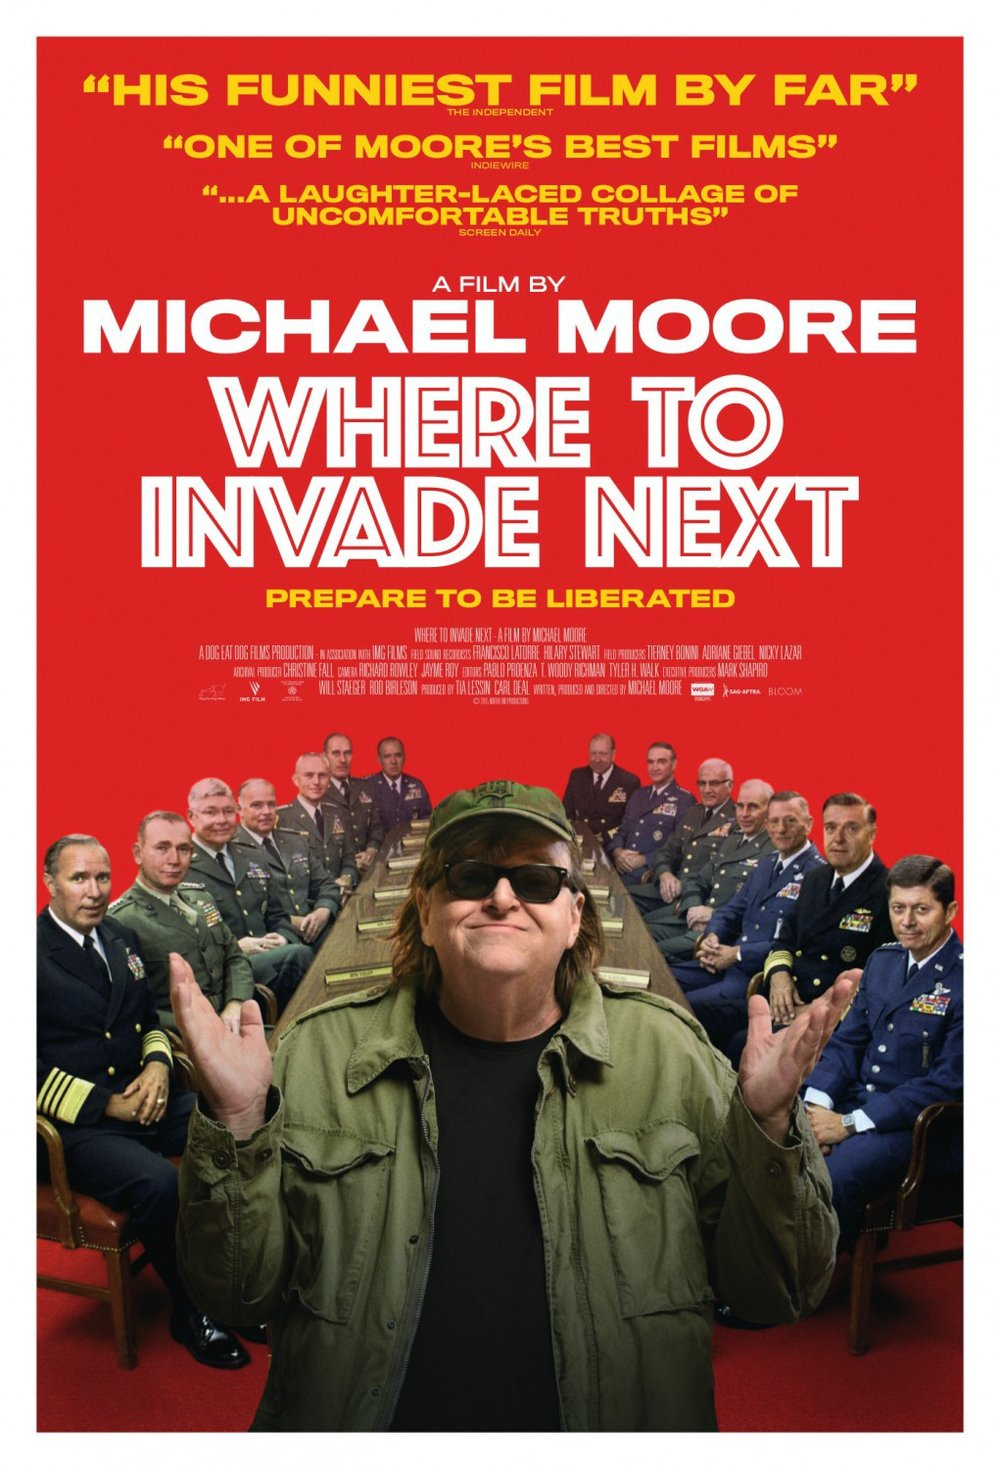 Where to Invade Next - A movie that explores the question: What if exploited other countries great ideas, rather than their resources? Now that's (r)evolutionary.[on Netflix!]